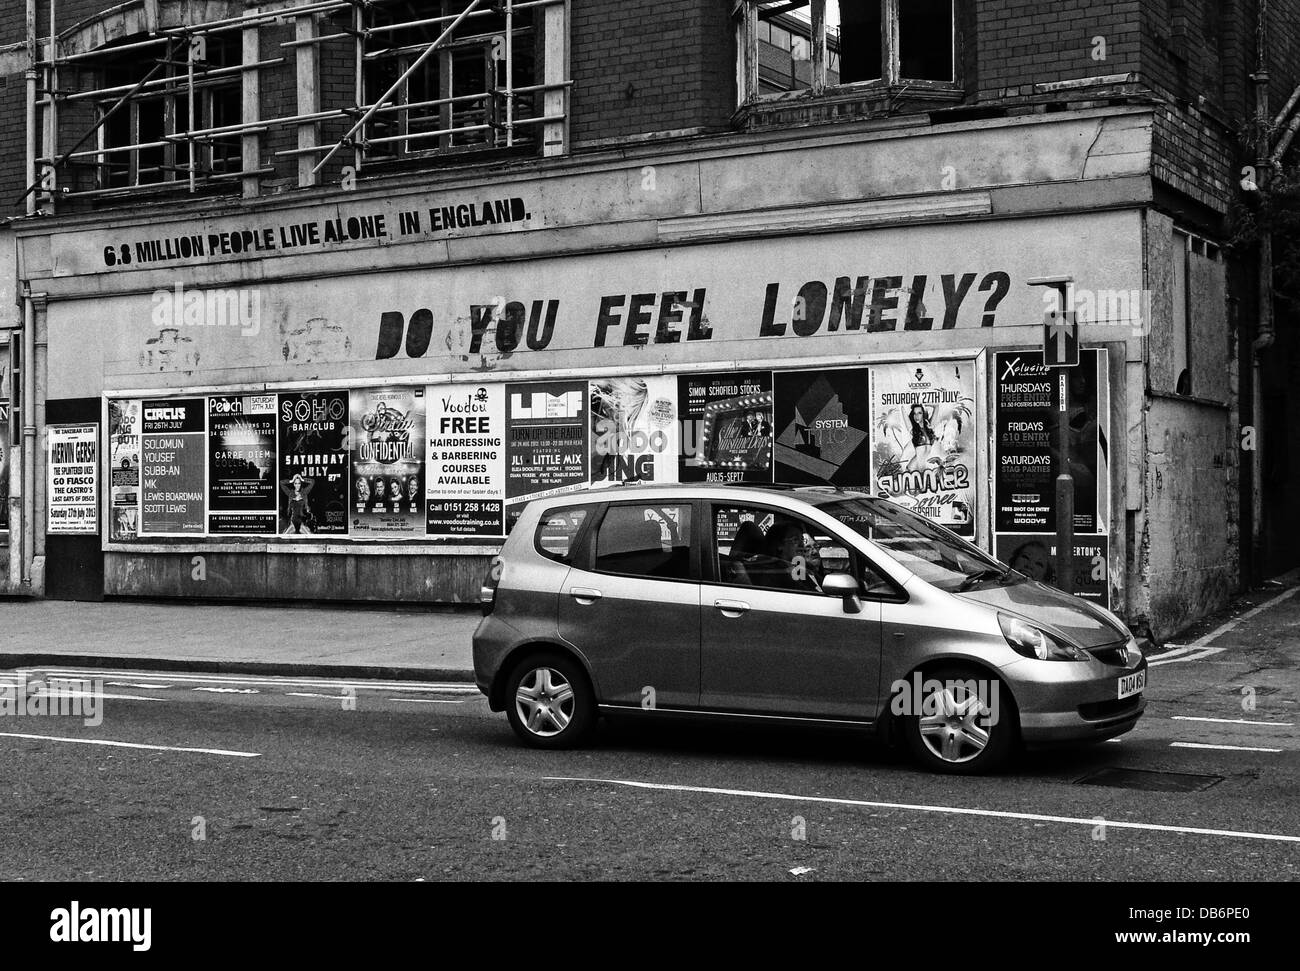 Samaritans, Do You Feel Lonely, Liverpool street, Merseyside, North West England, UK, L1 - Stock Image